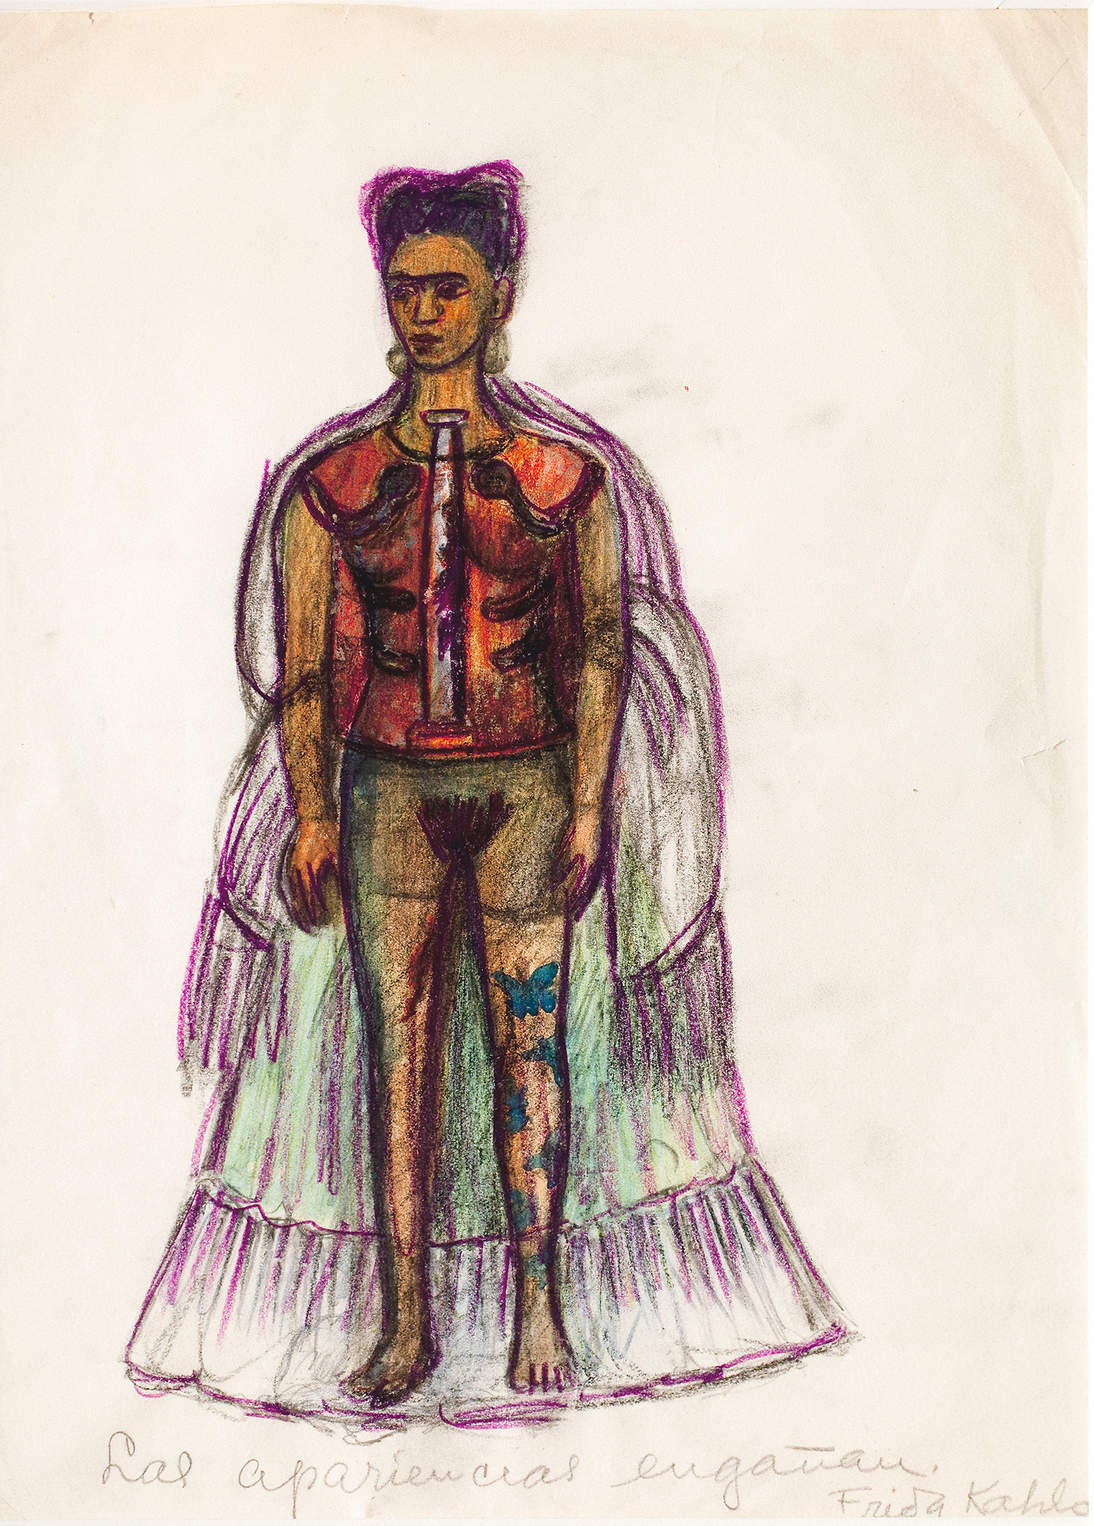 """Frida Kahlo, """"Appearances Can Be Deceiving,"""" No date. Charcoal and pencil on paper, 11.4 x 8.3 in.  (29 x 21 cm). Museo Frida Kahlo © 2020 Banco de México Diego Rivera & Frida Kahlo Museums Trust. Av. 5 de Mayo No. 2, Col. Centro, alc. Cuauhtémoc, C.P. 06000, Mexico City / Artists Rights Society (ARS), New York"""